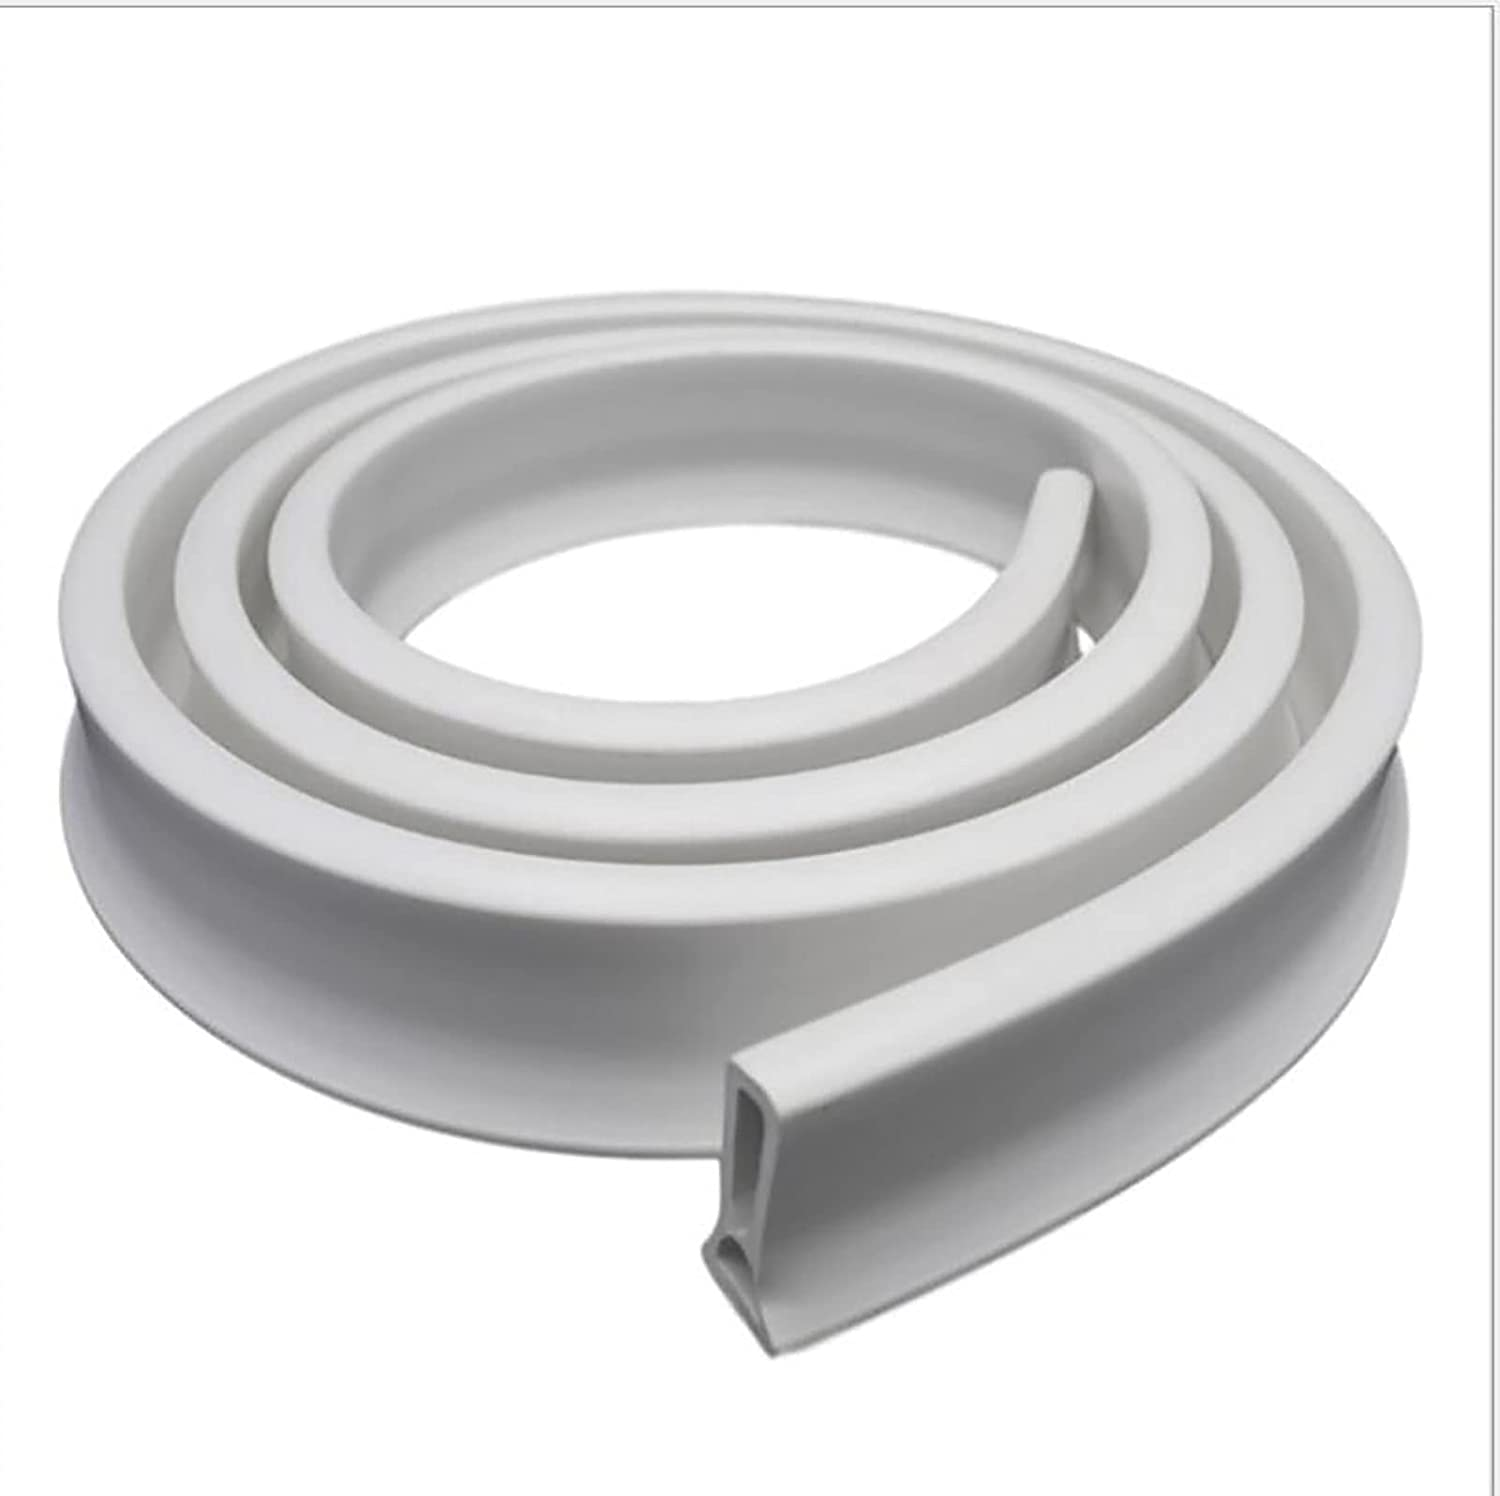 Water Guard Manufacturer direct delivery for Kitchen Sink Silicone Bendable S Blocking famous